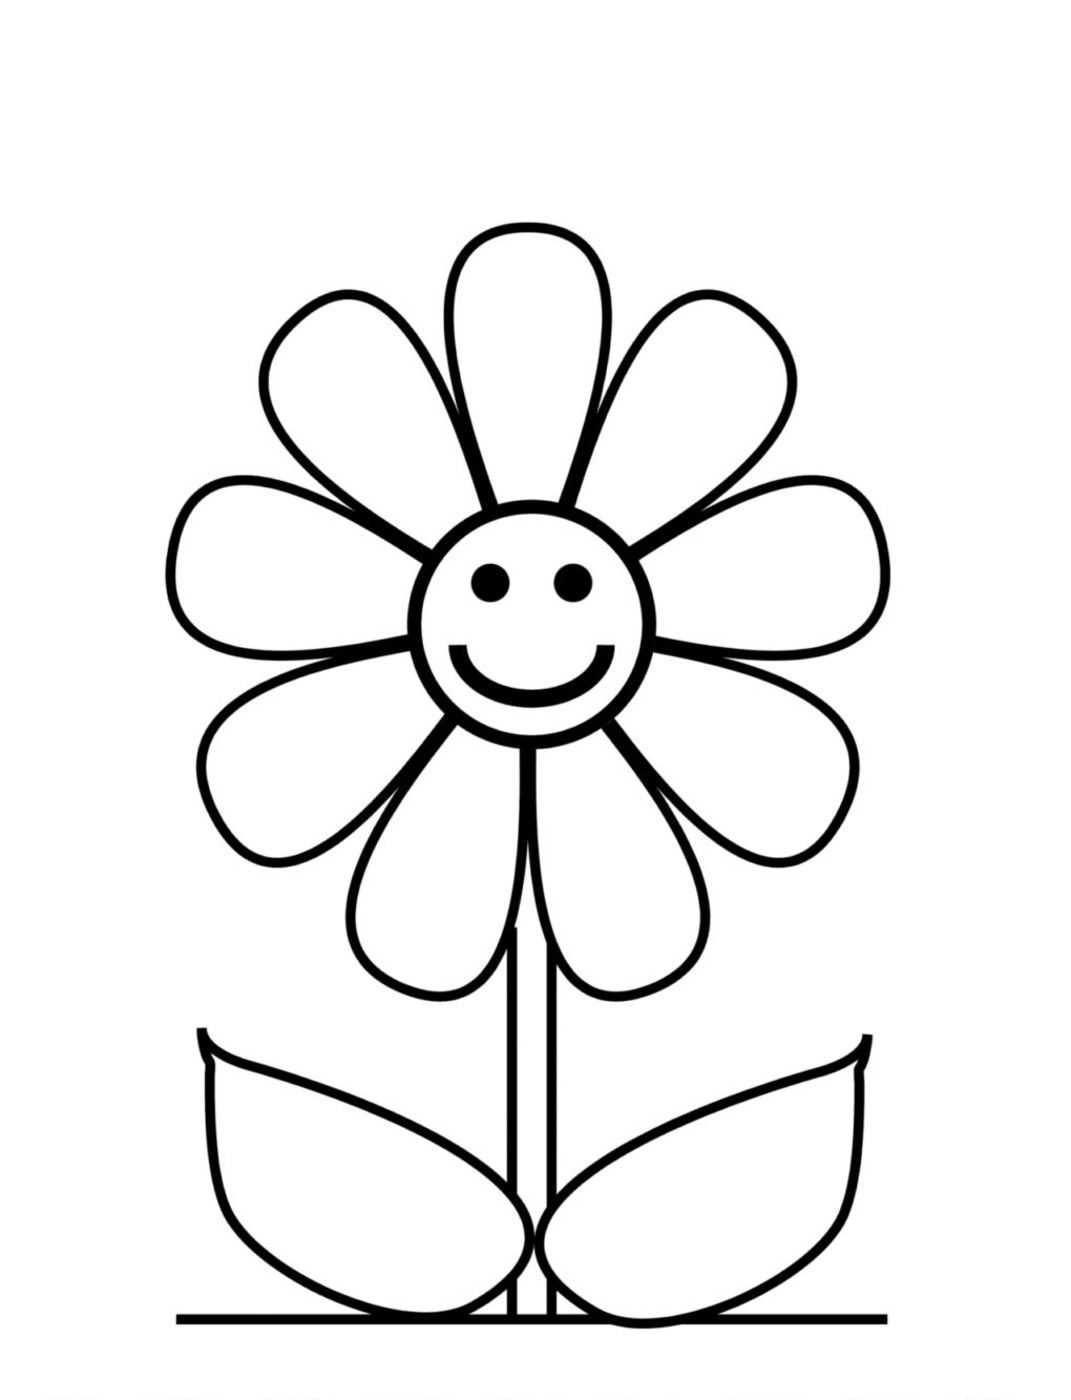 Coloring Pages For Girls   Flower Coloring Pages ...   flower coloring pages preschool